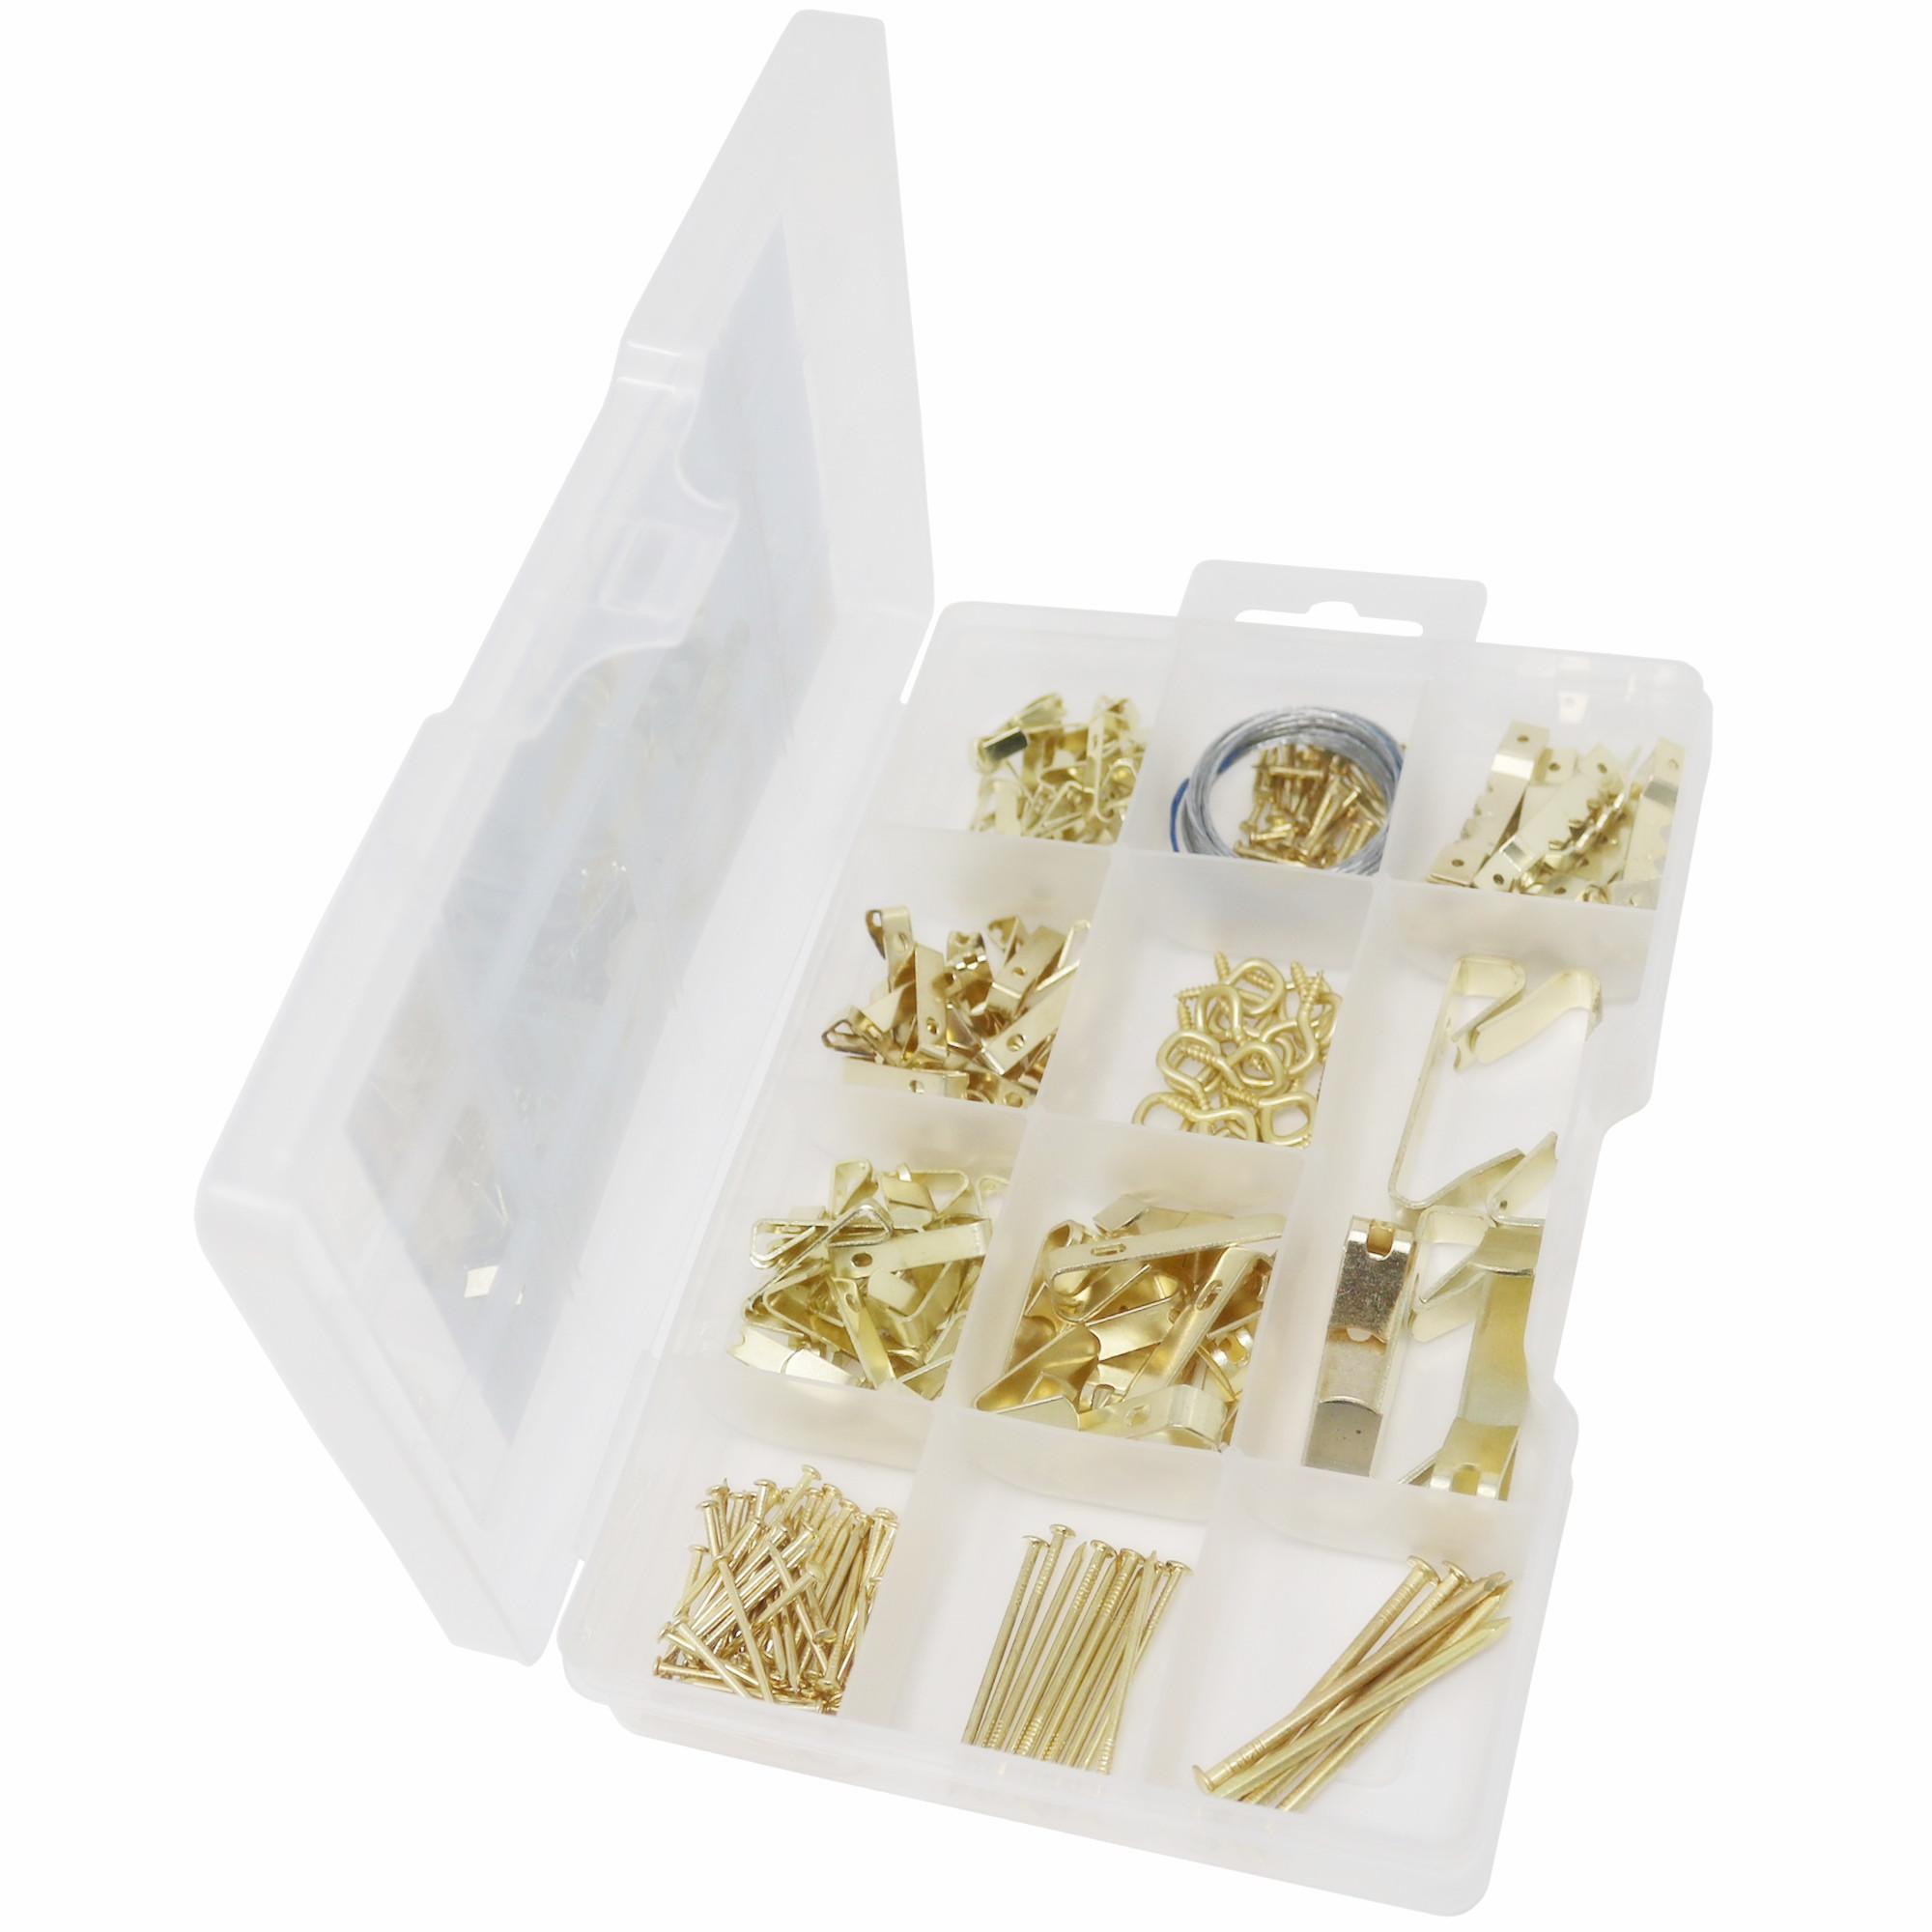 Factory direct supply Customizable packaging for DIY tools 85pcs Oval Head Nails and Picture Hangers And <strong>Hooks</strong> Assortment Kit